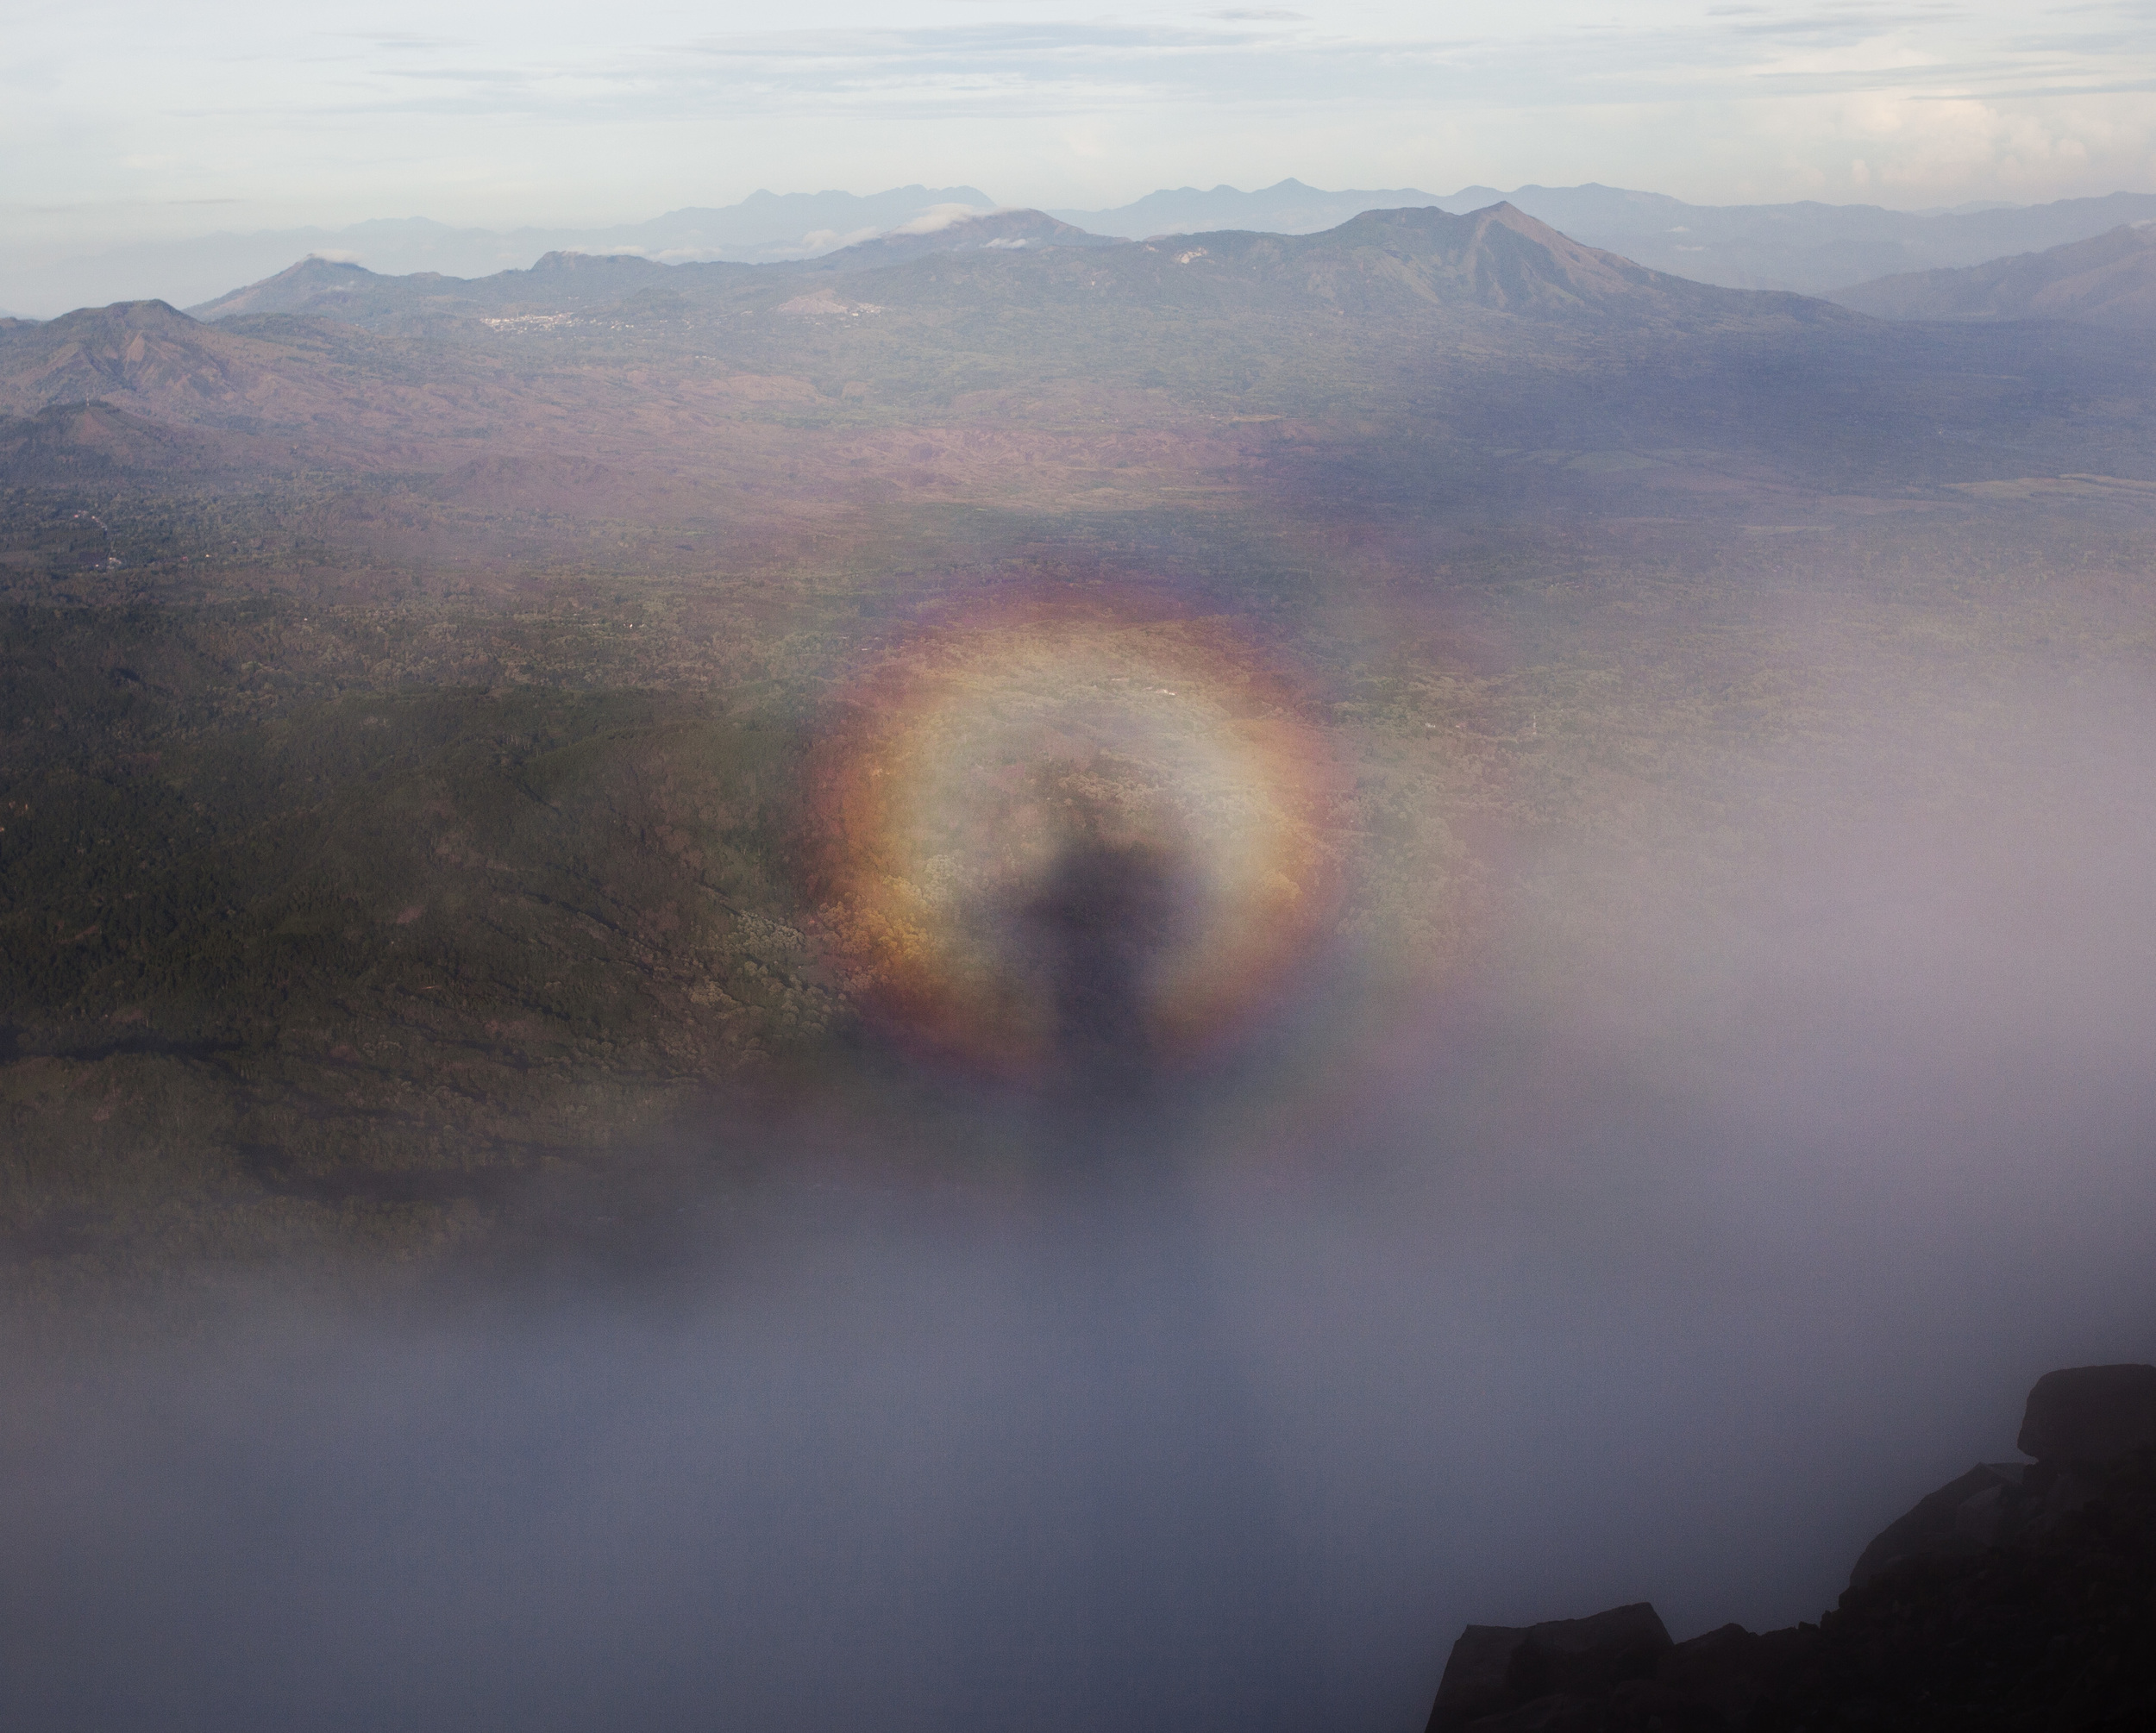 cool circular rainbow that formed in the blowing mist